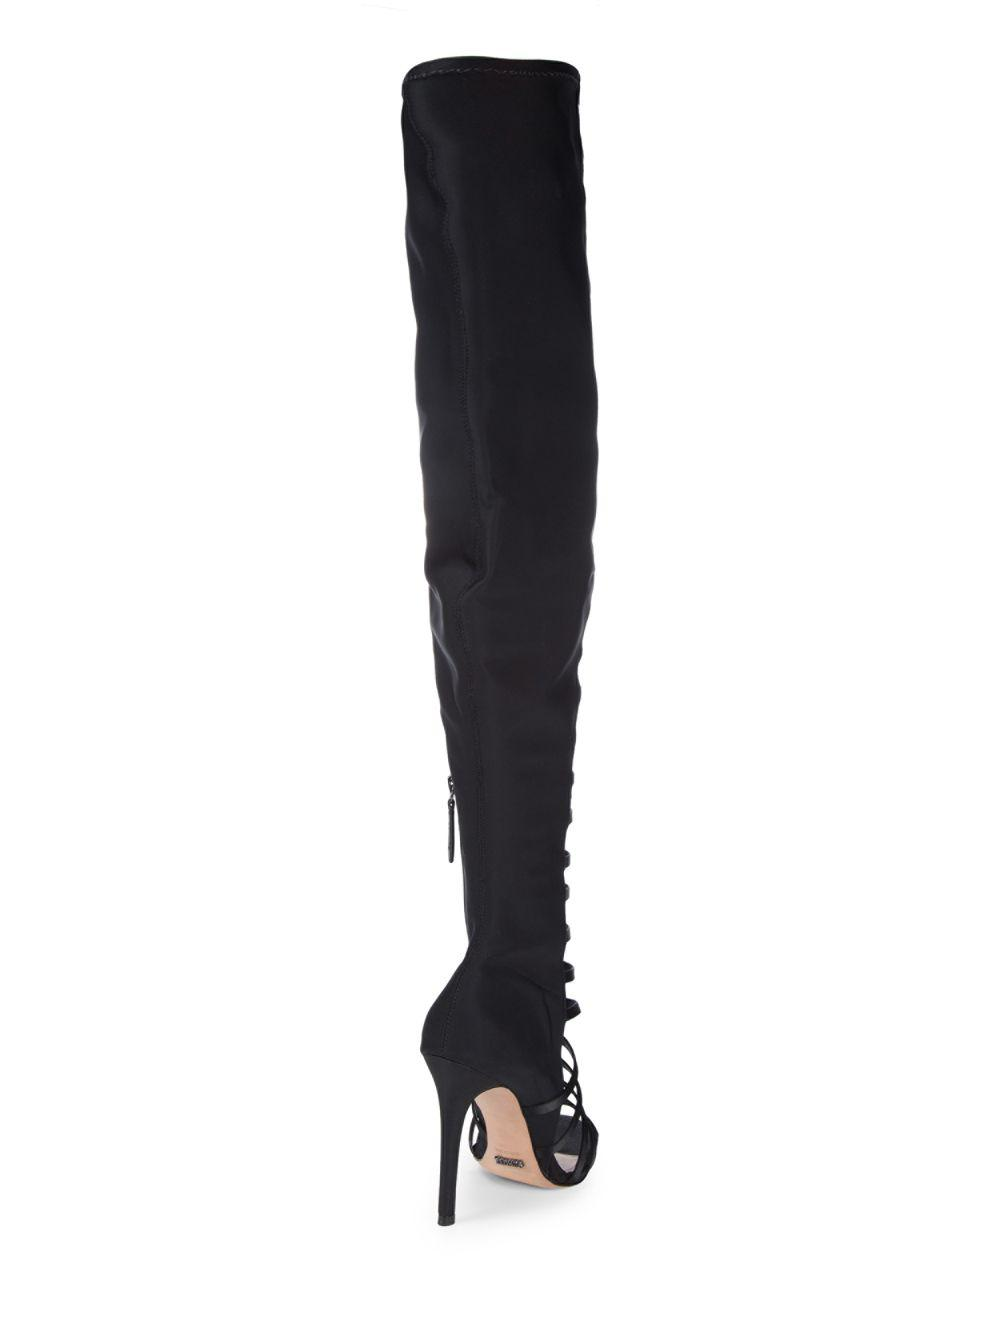 Schutz Synthetic Kacia Cut-out Thigh High Boot in Black